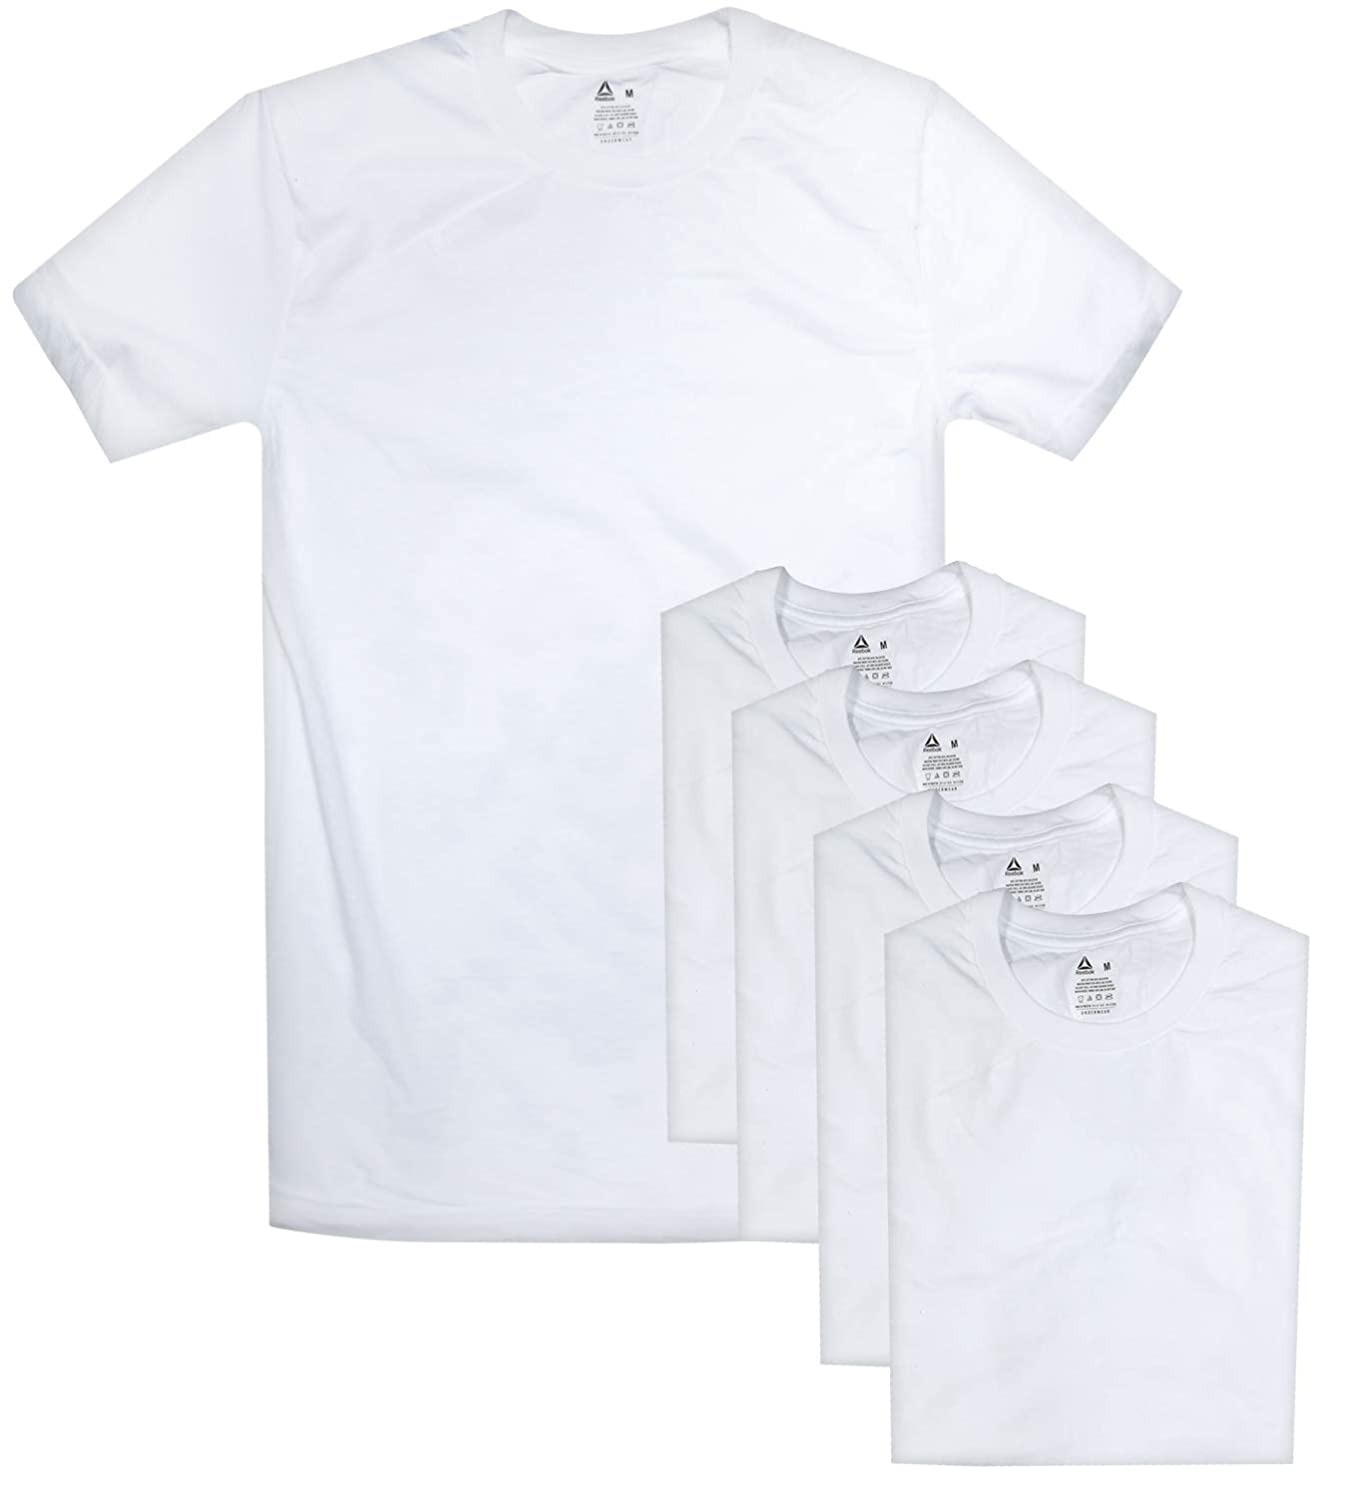 Reebok Men's Crew Neck T-Shirt (5 Pack), White, Small at Amazon Men's  Clothing store: